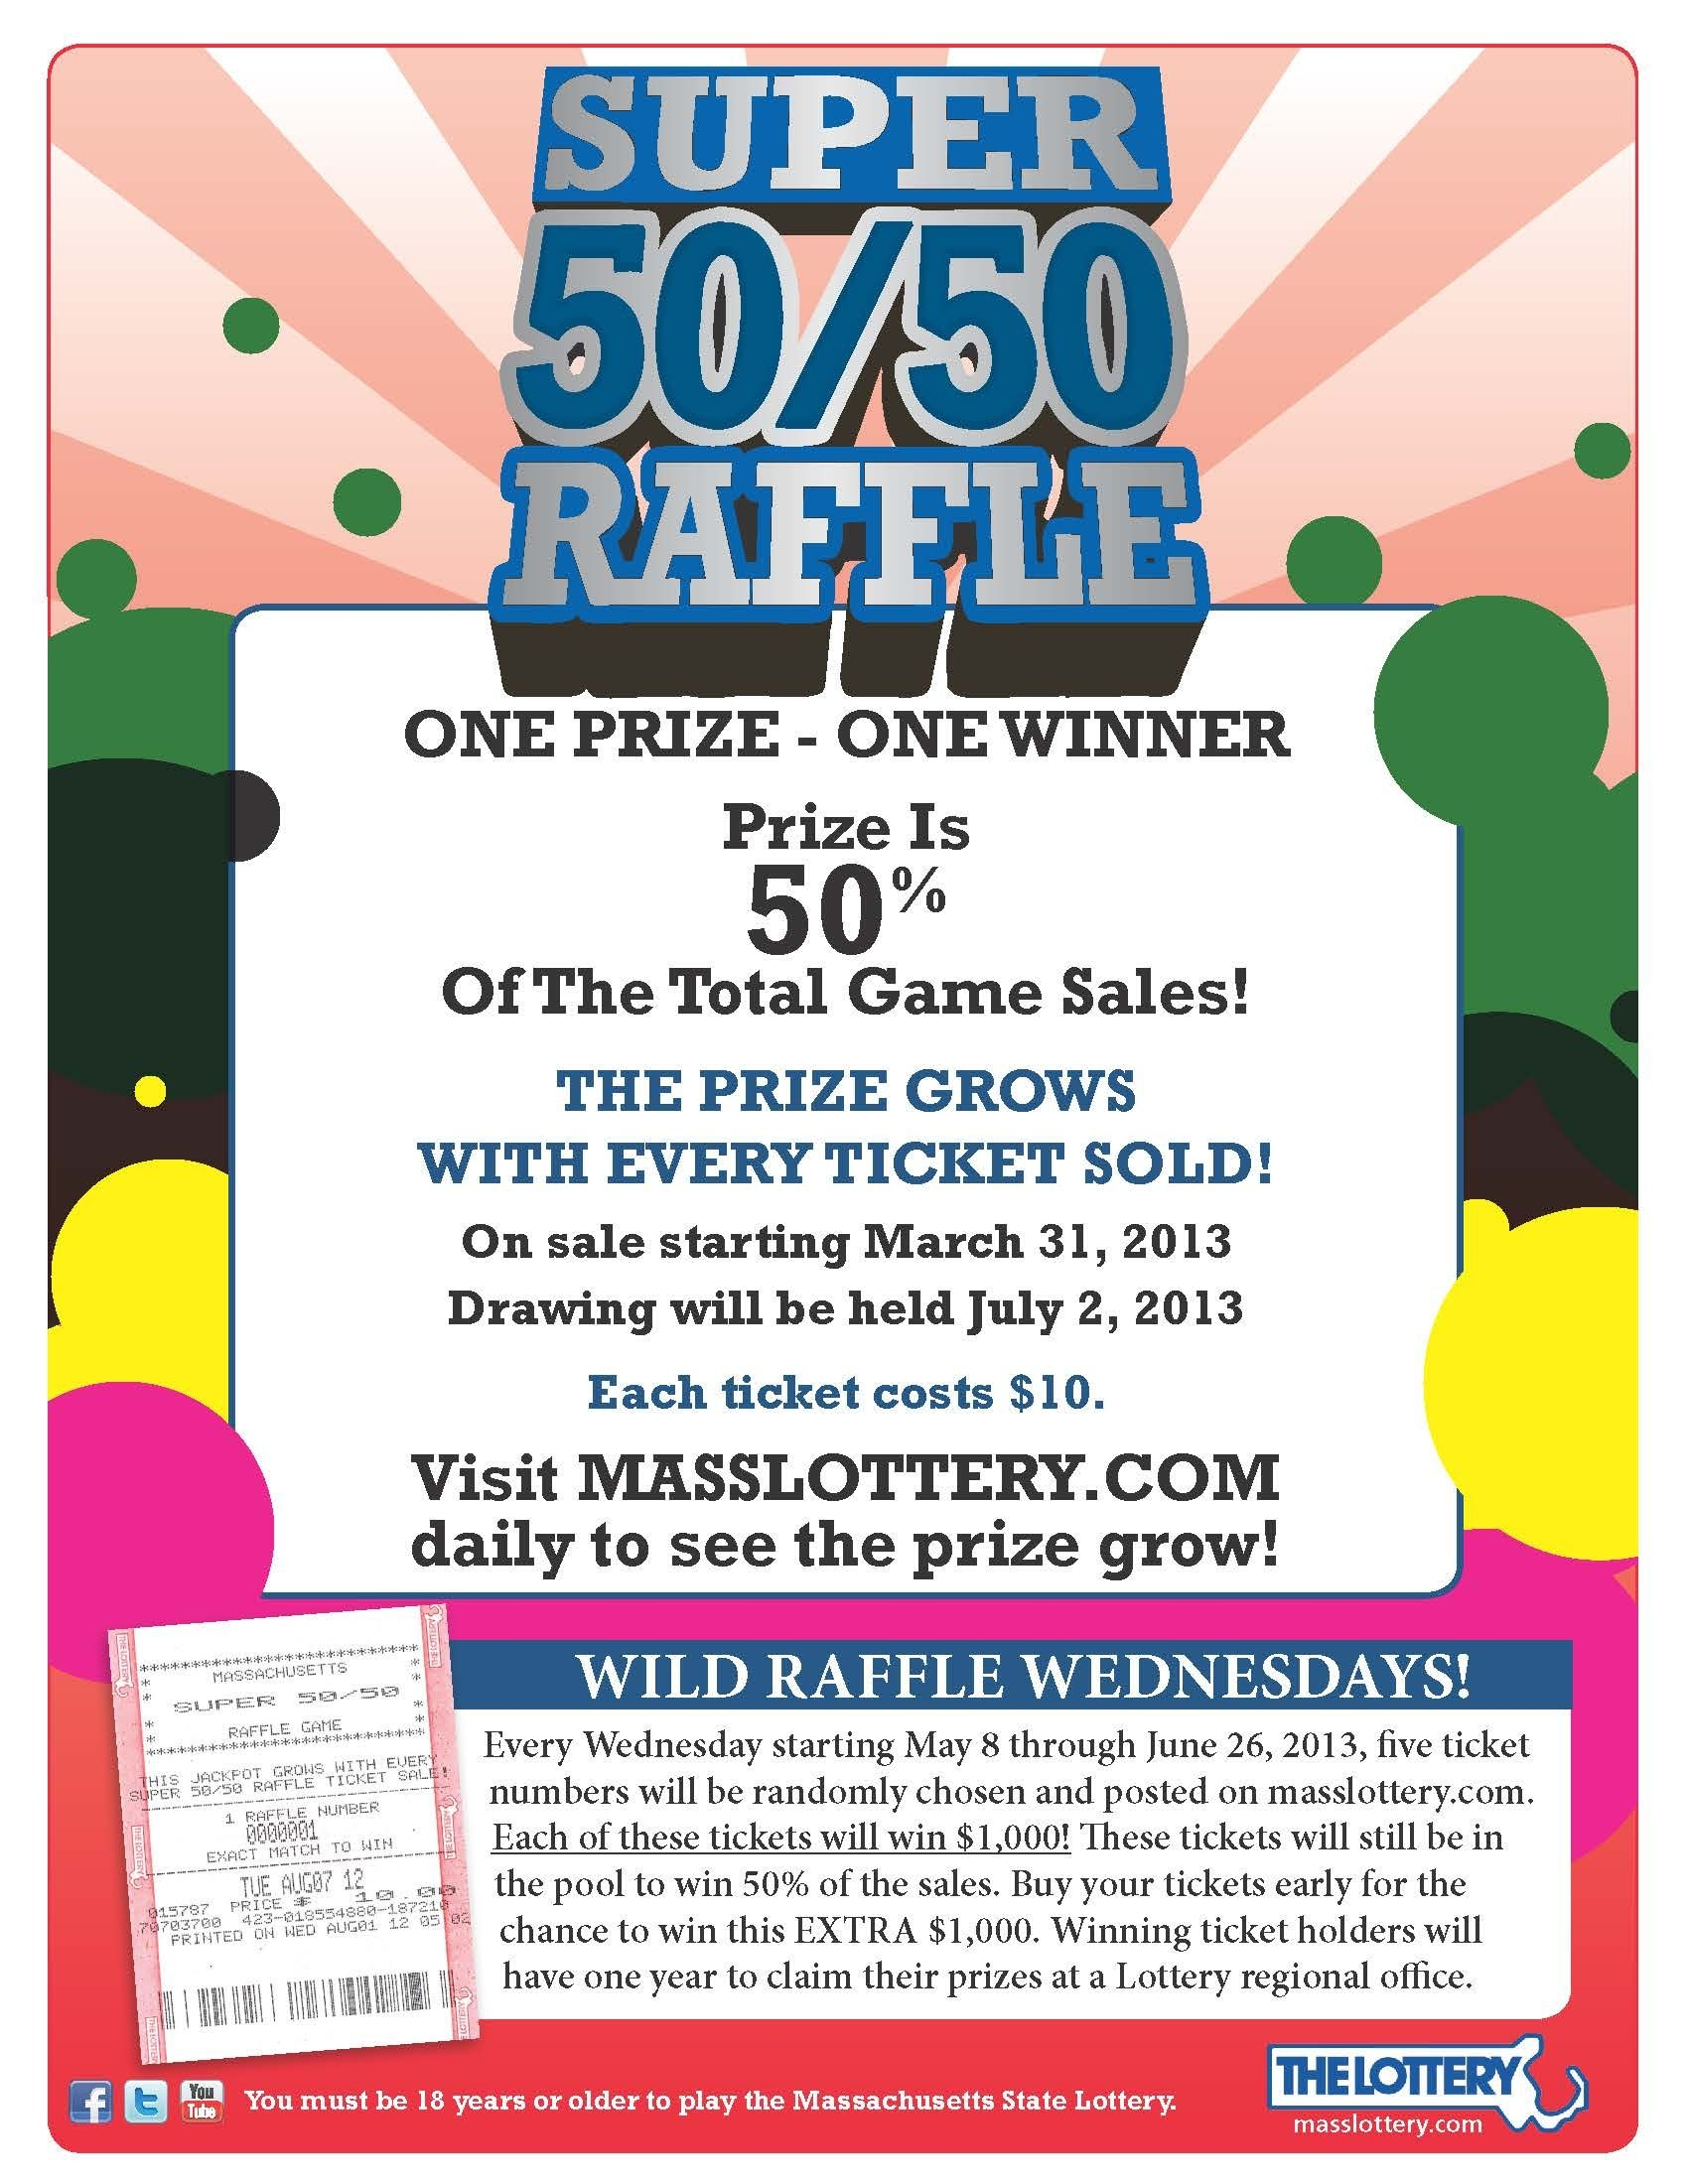 Raffle Drawing Flyer Template